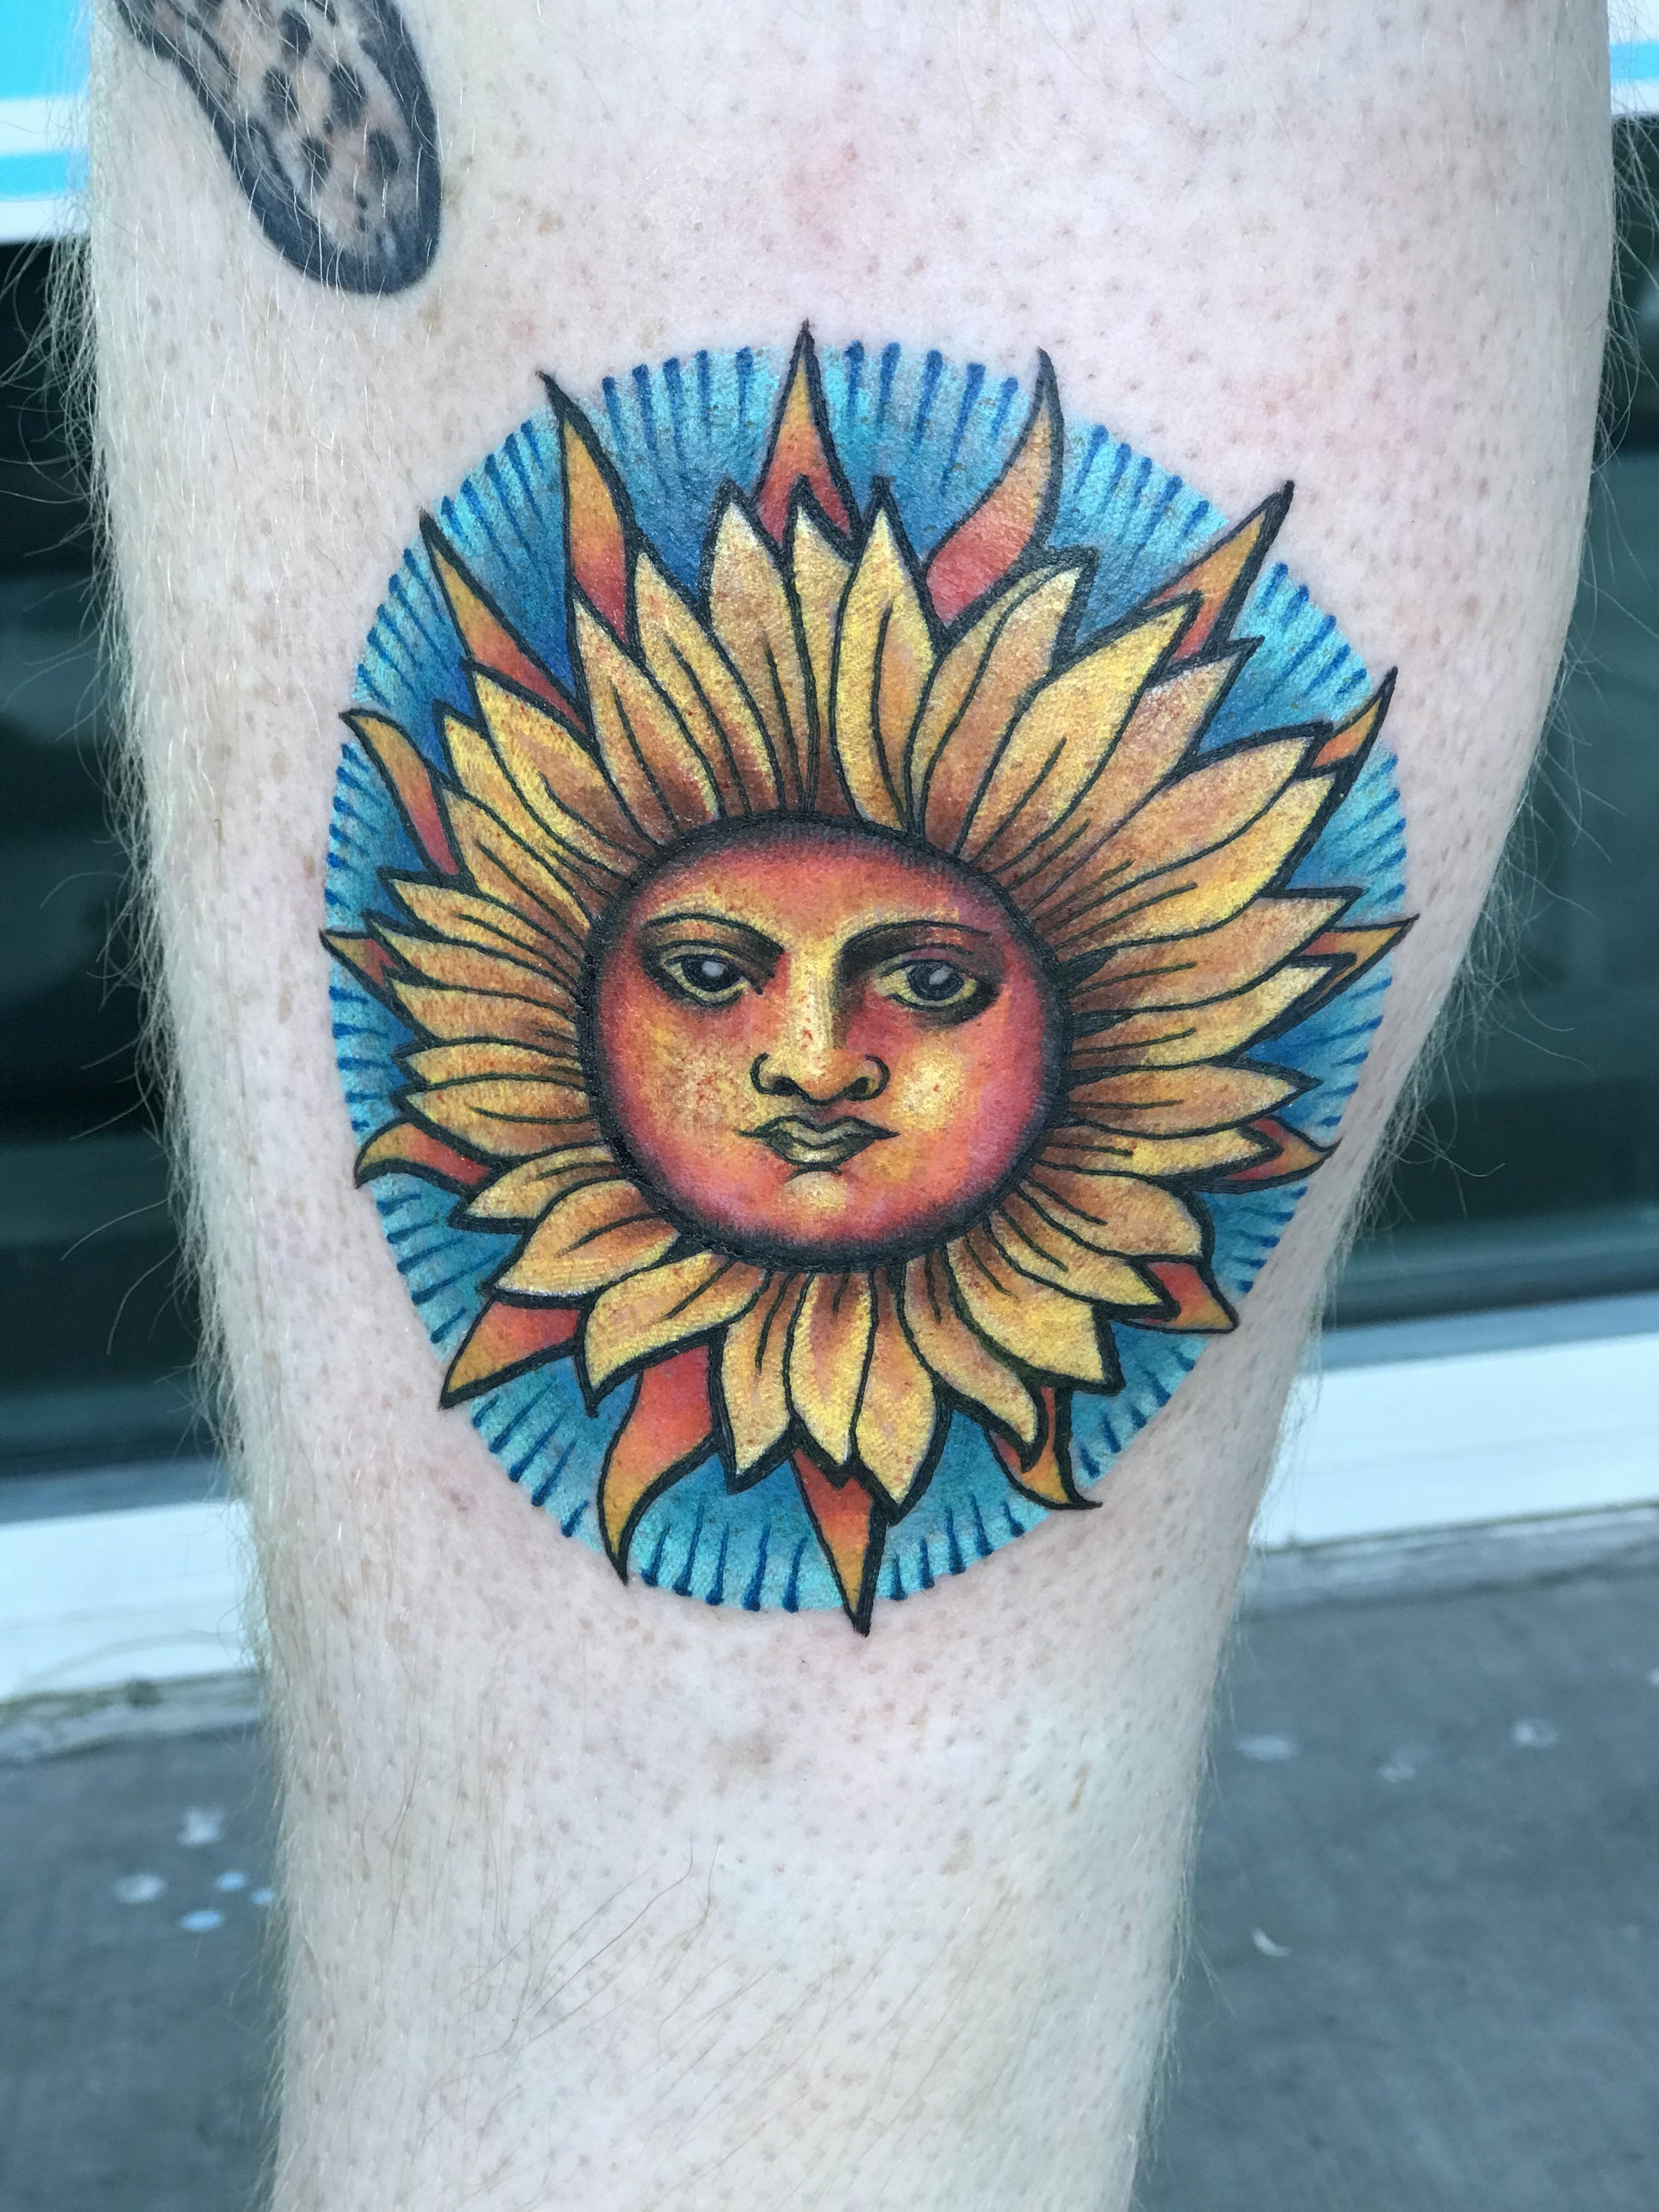 Sun and Sunflower Tattoo by Krystof